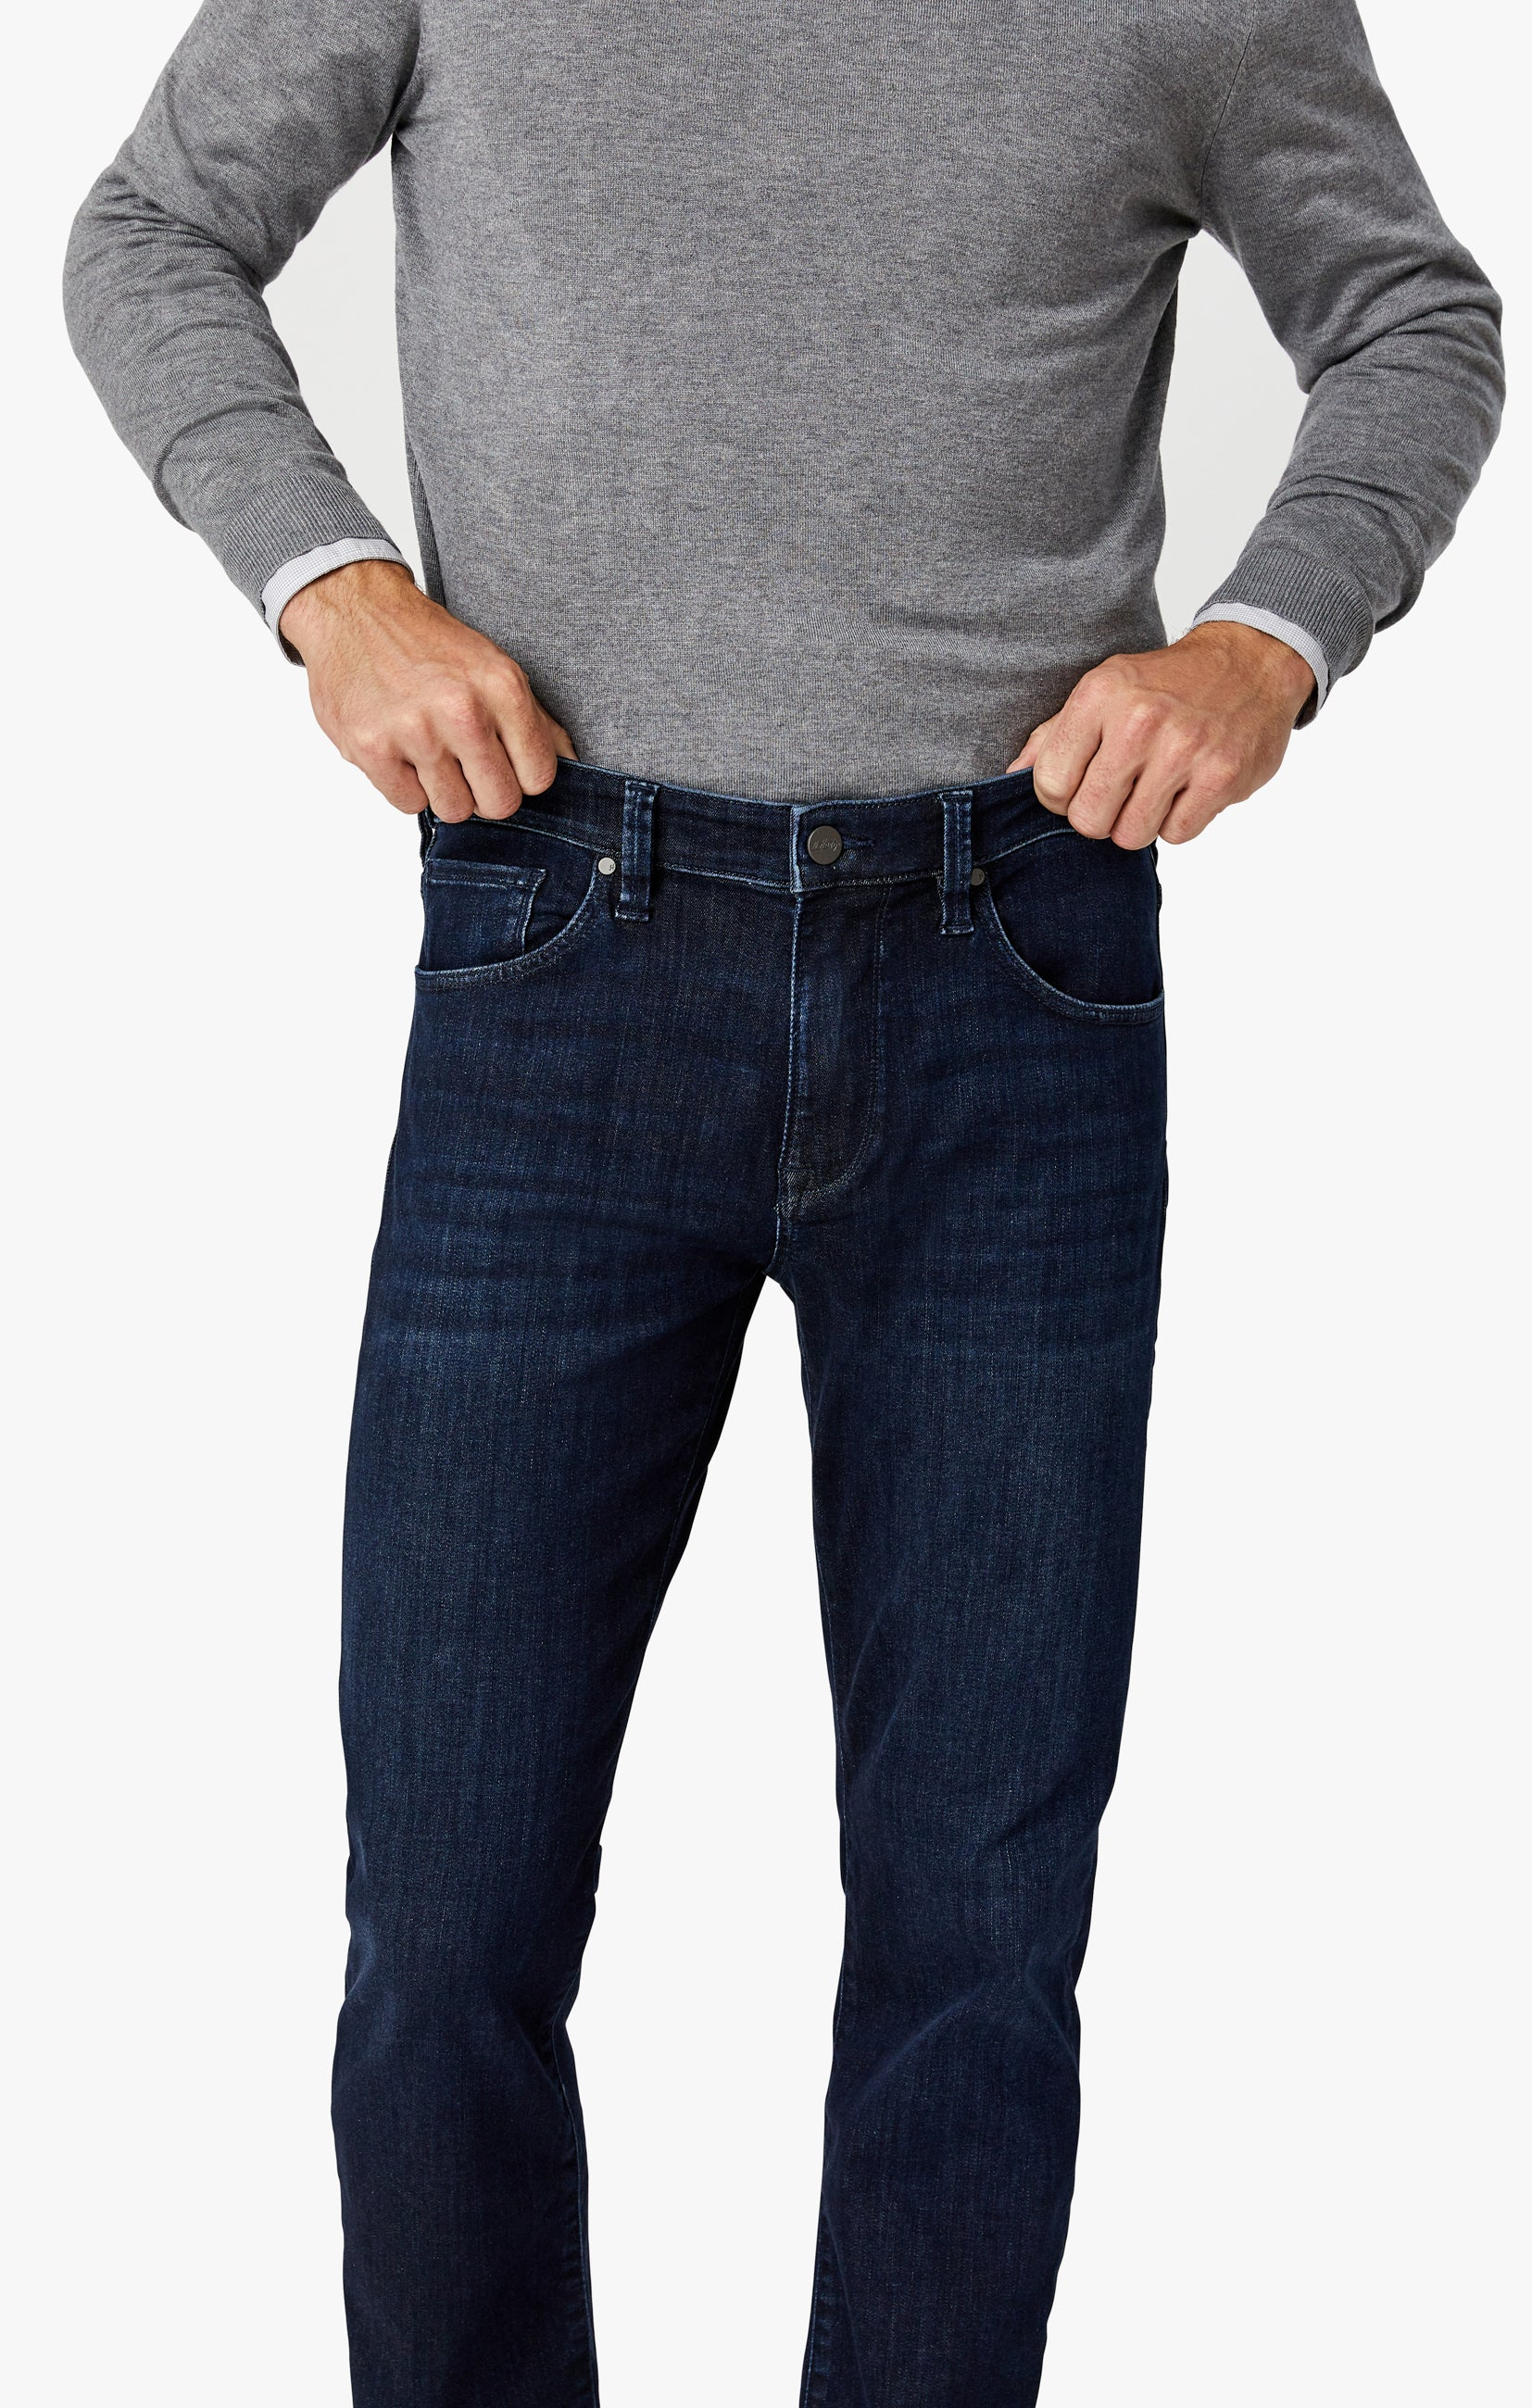 Charisma Relaxed Straight Jeans in Deep Urban Image 5